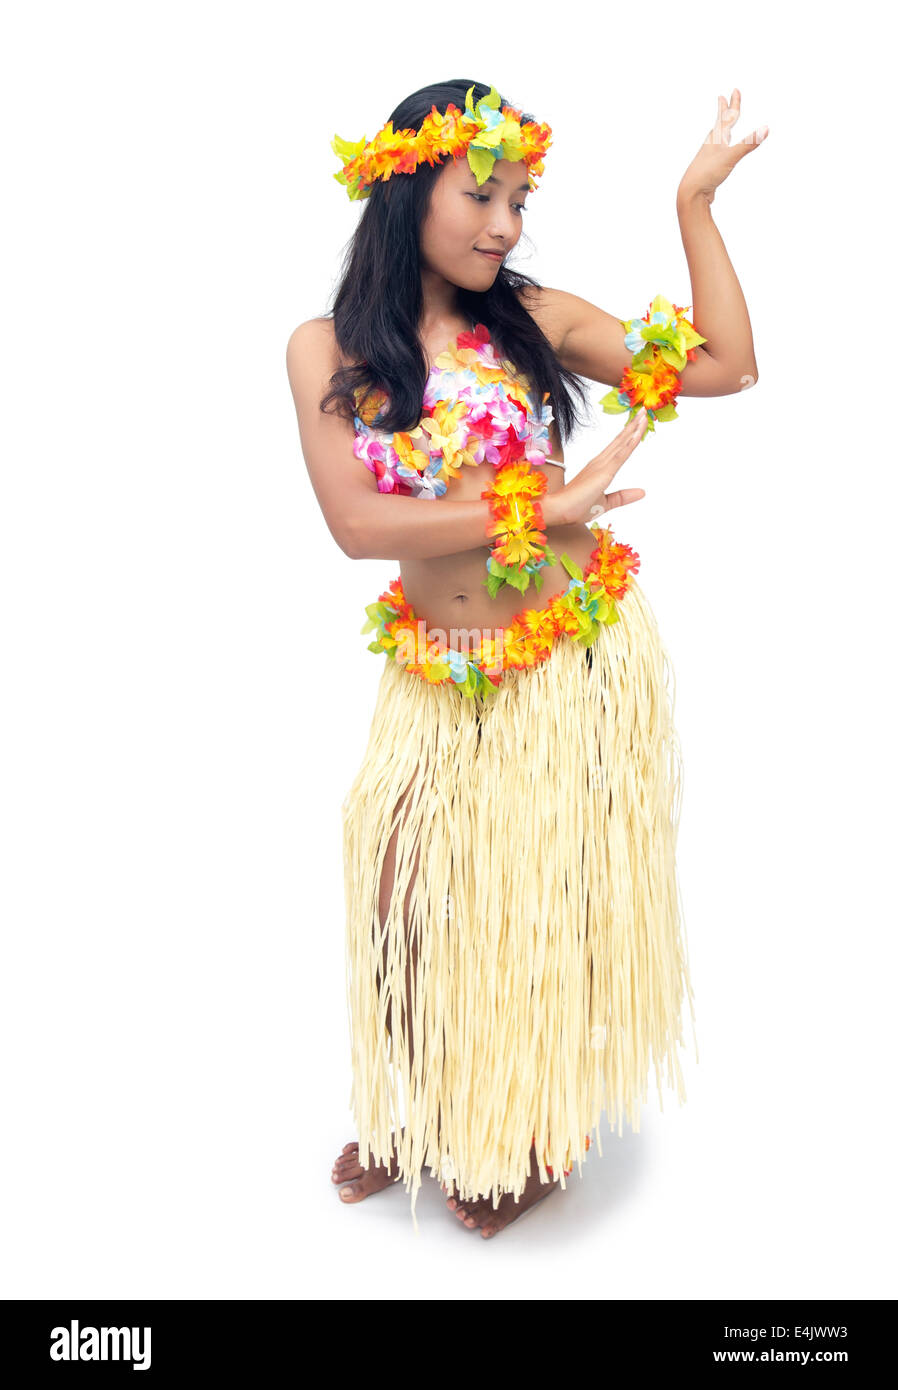 Hawaii hula dancer on white background - Stock Image